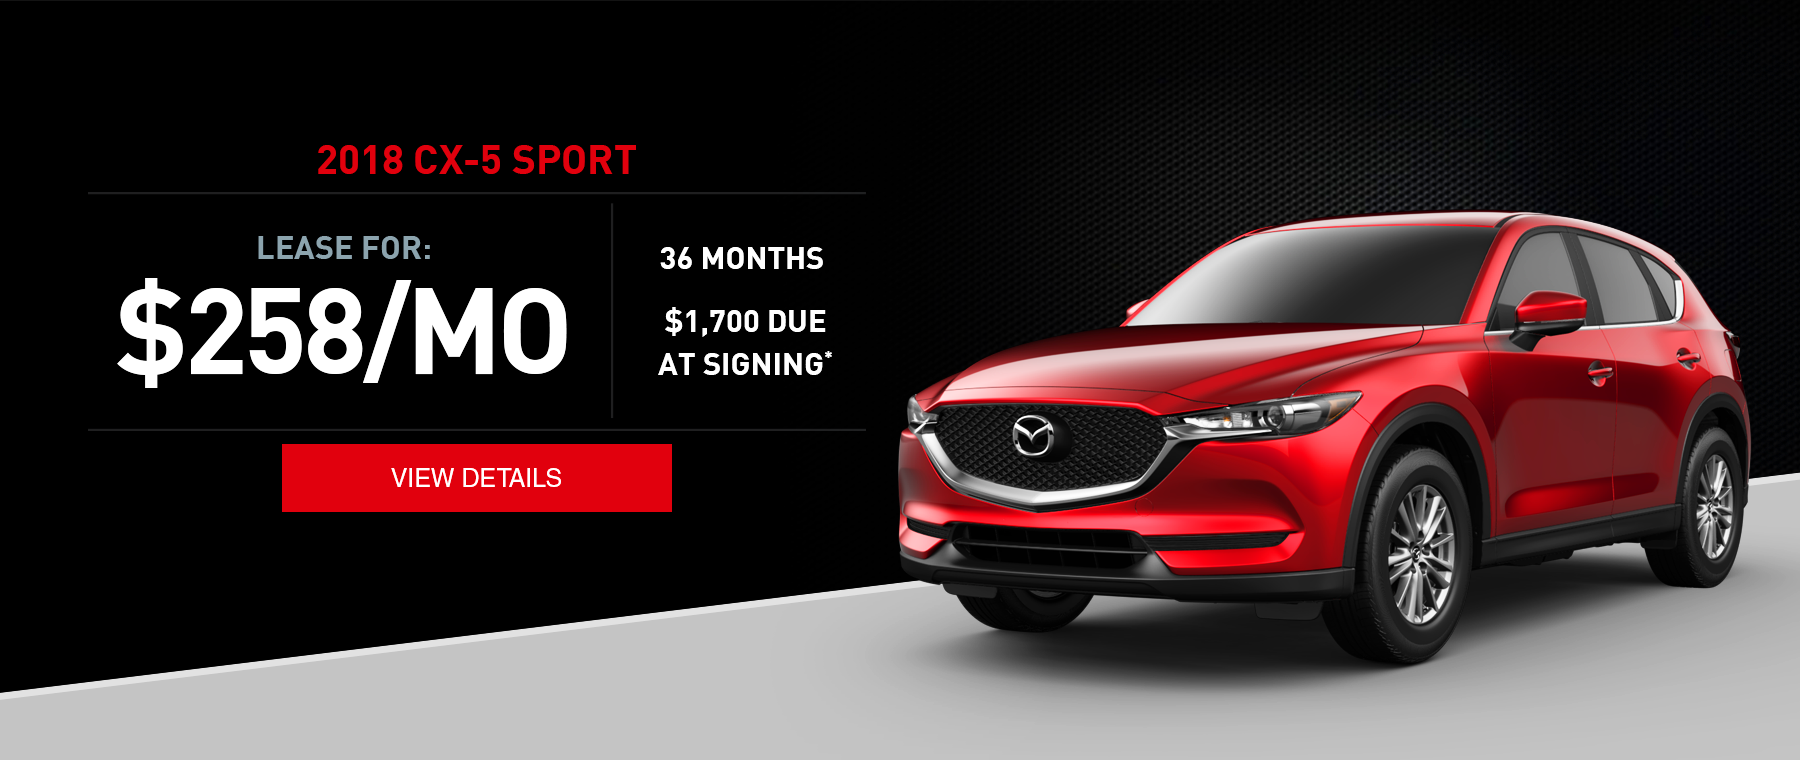 West Hills Mazda CX-5 Lease Offer